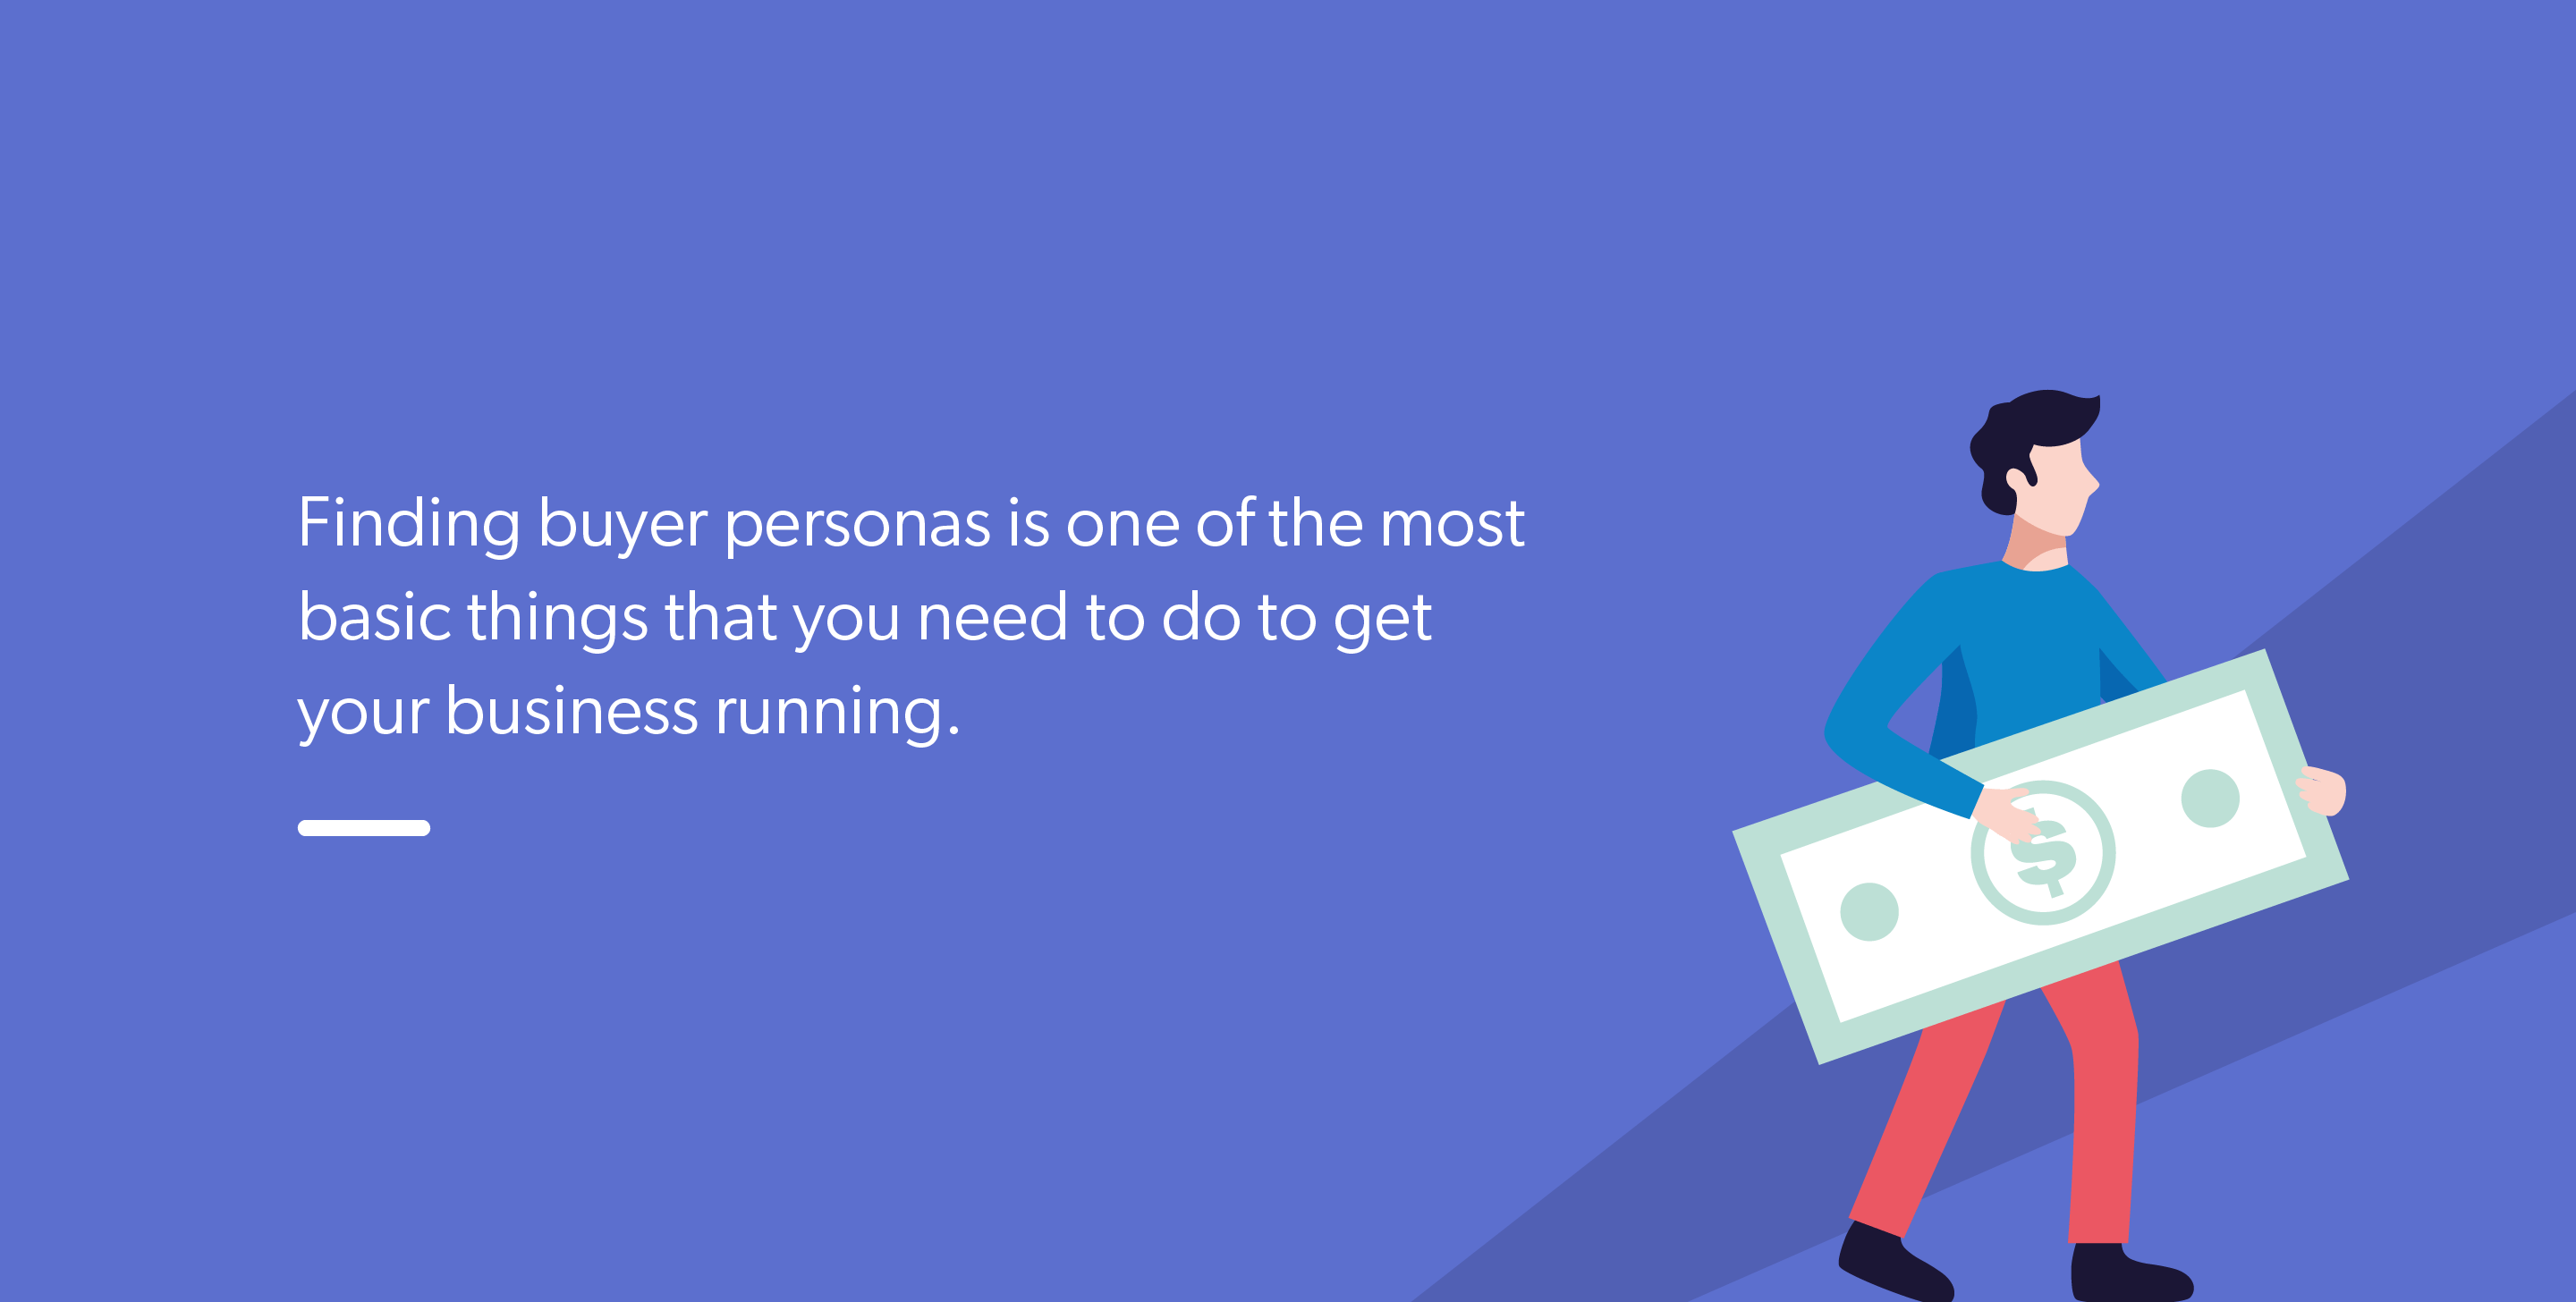 Finding buyer personas is one of the most basic things that you need to do to get your business running.